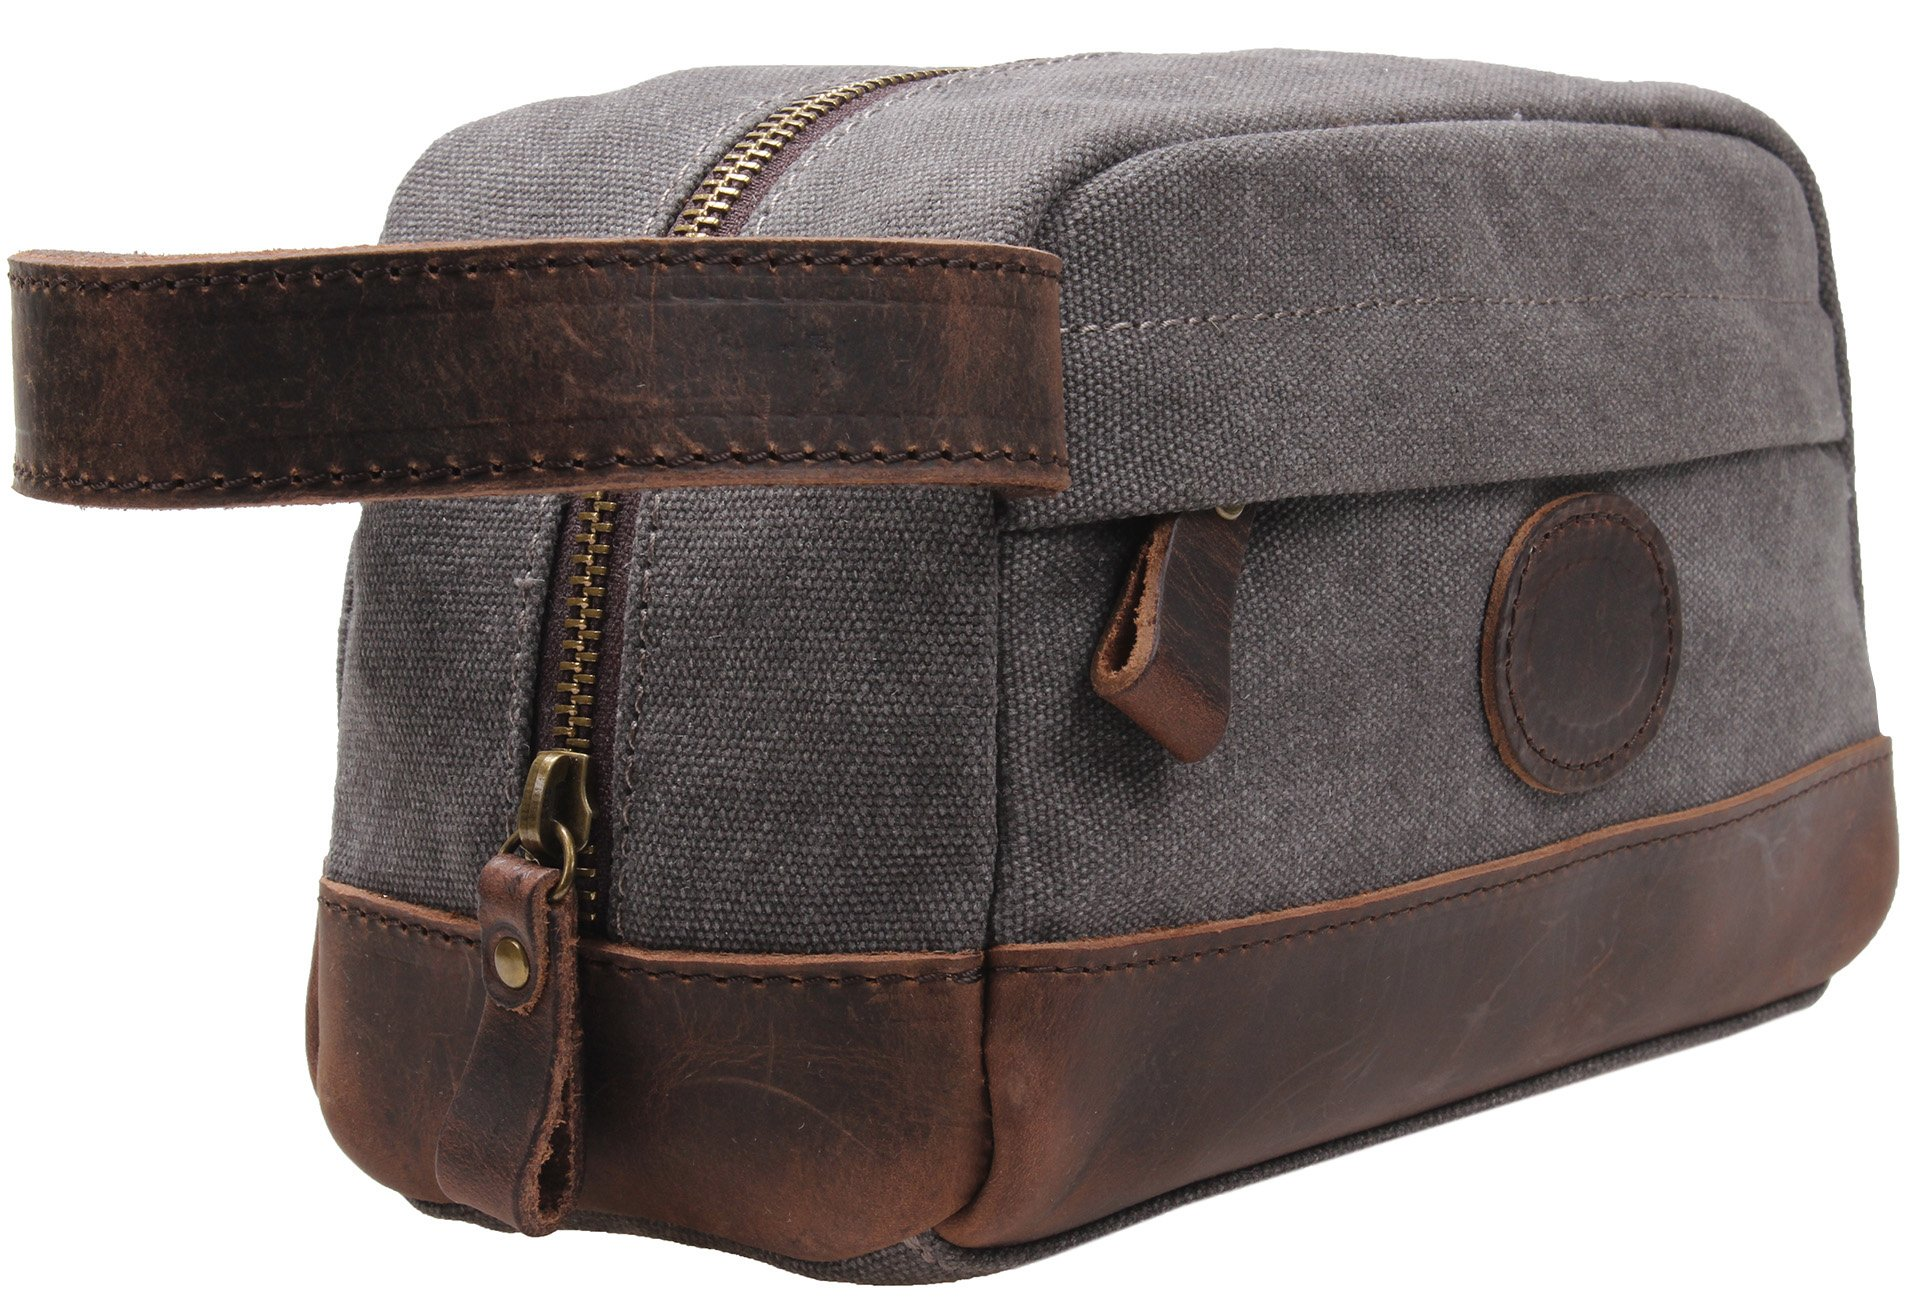 Vintage Leather Canvas Travel Toiletry Bag Shaving Dopp Kit #A001 (Grey) by TINTAO